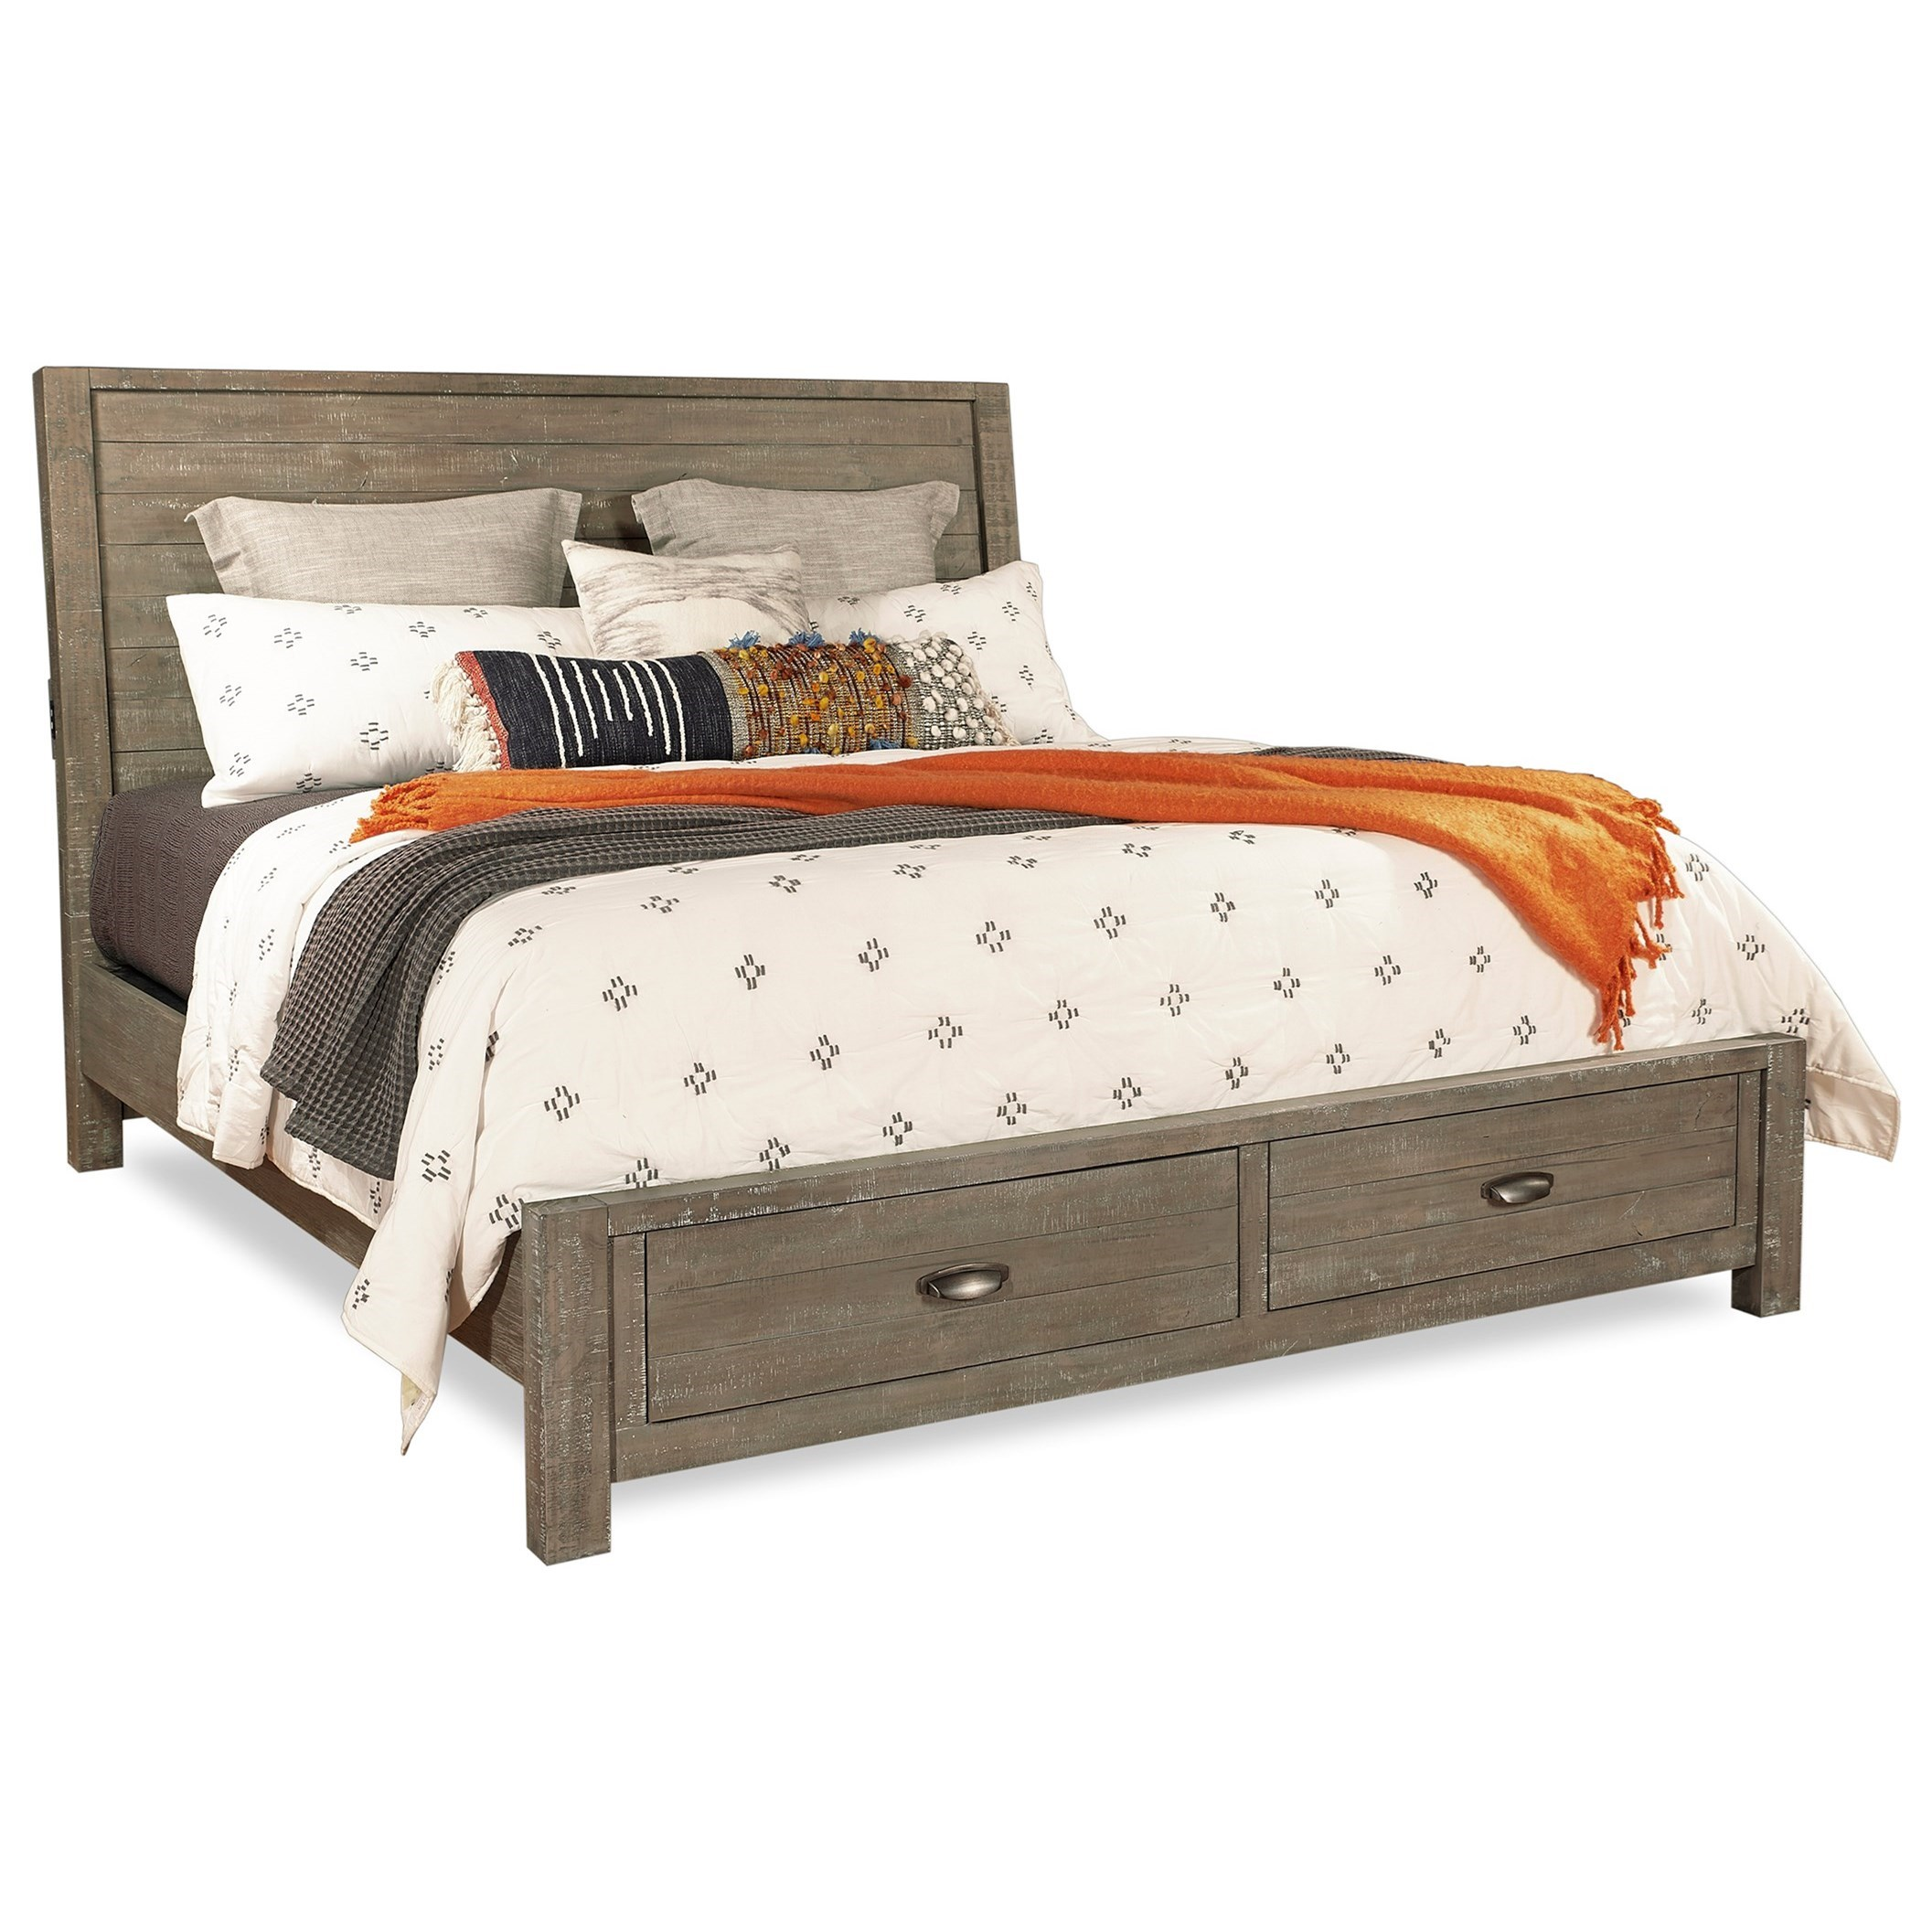 Radiata Queen Sleigh Storage Bed by Aspenhome at Baer's Furniture